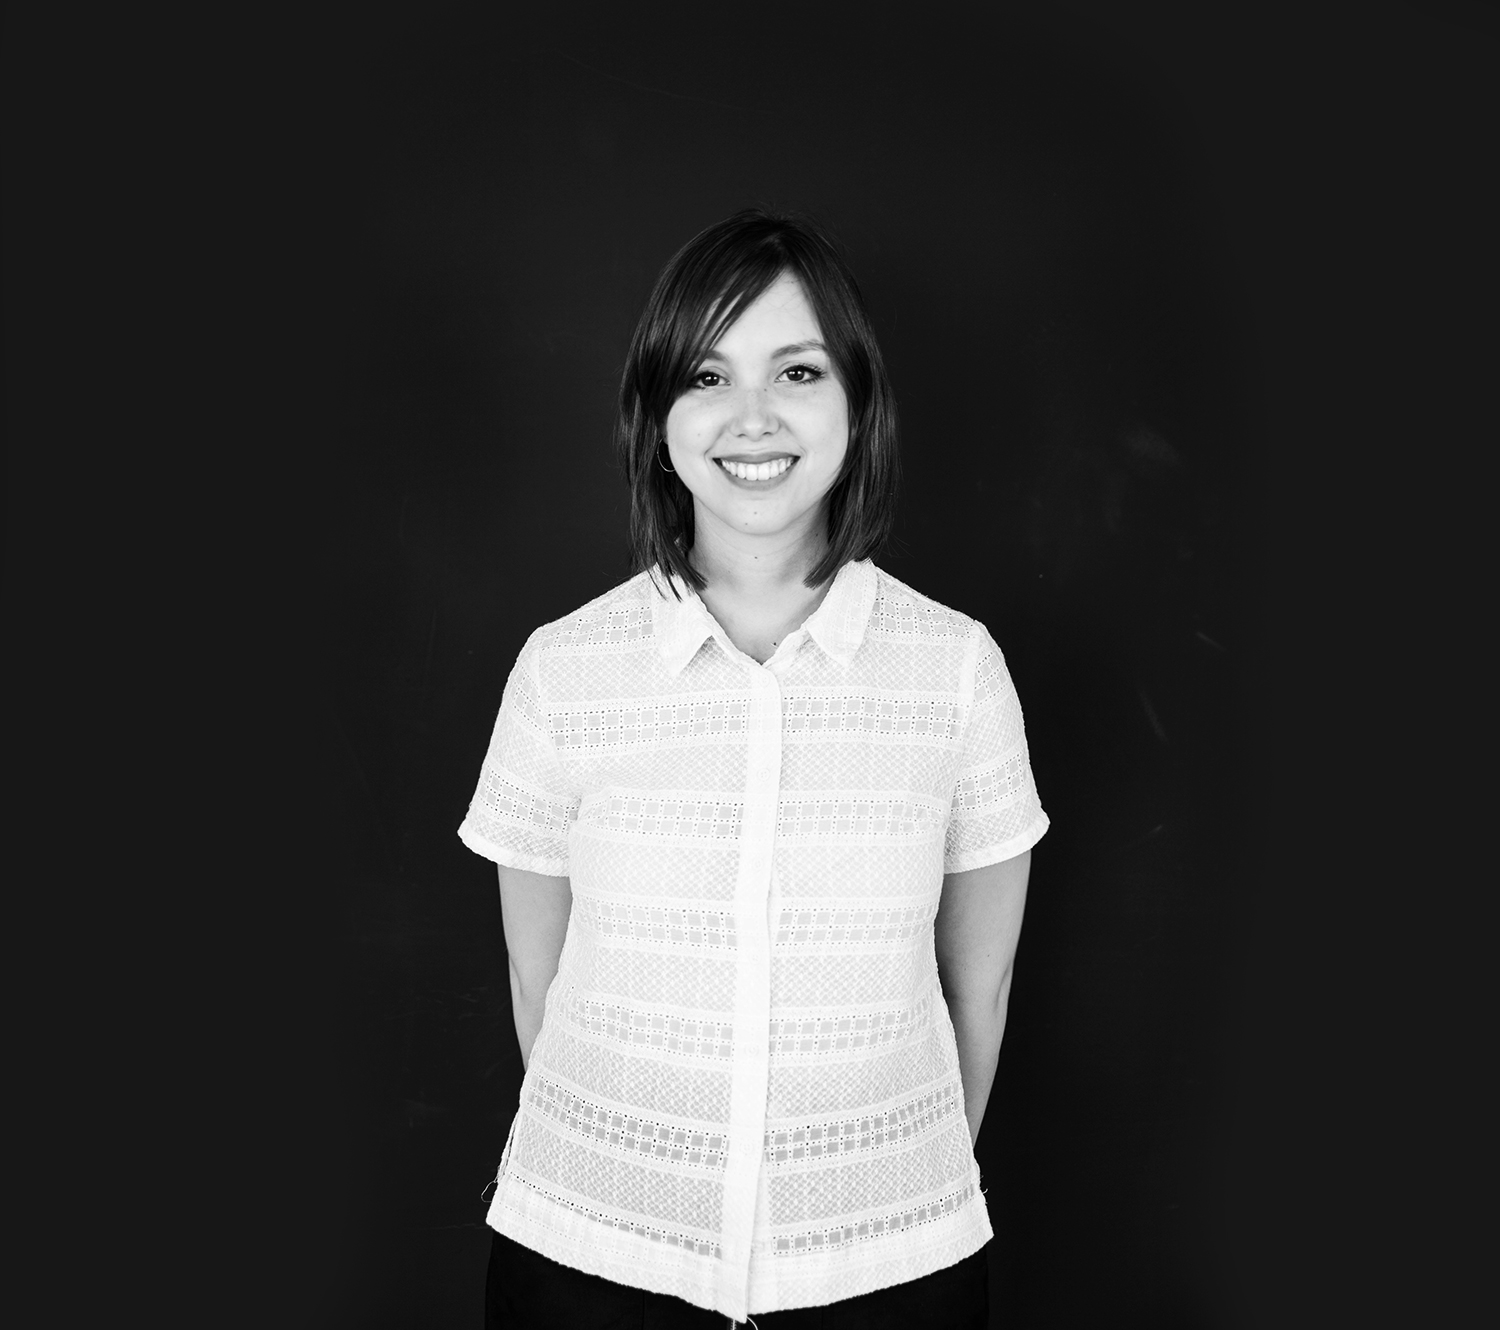 Ana Lahera, Trainee Art Director